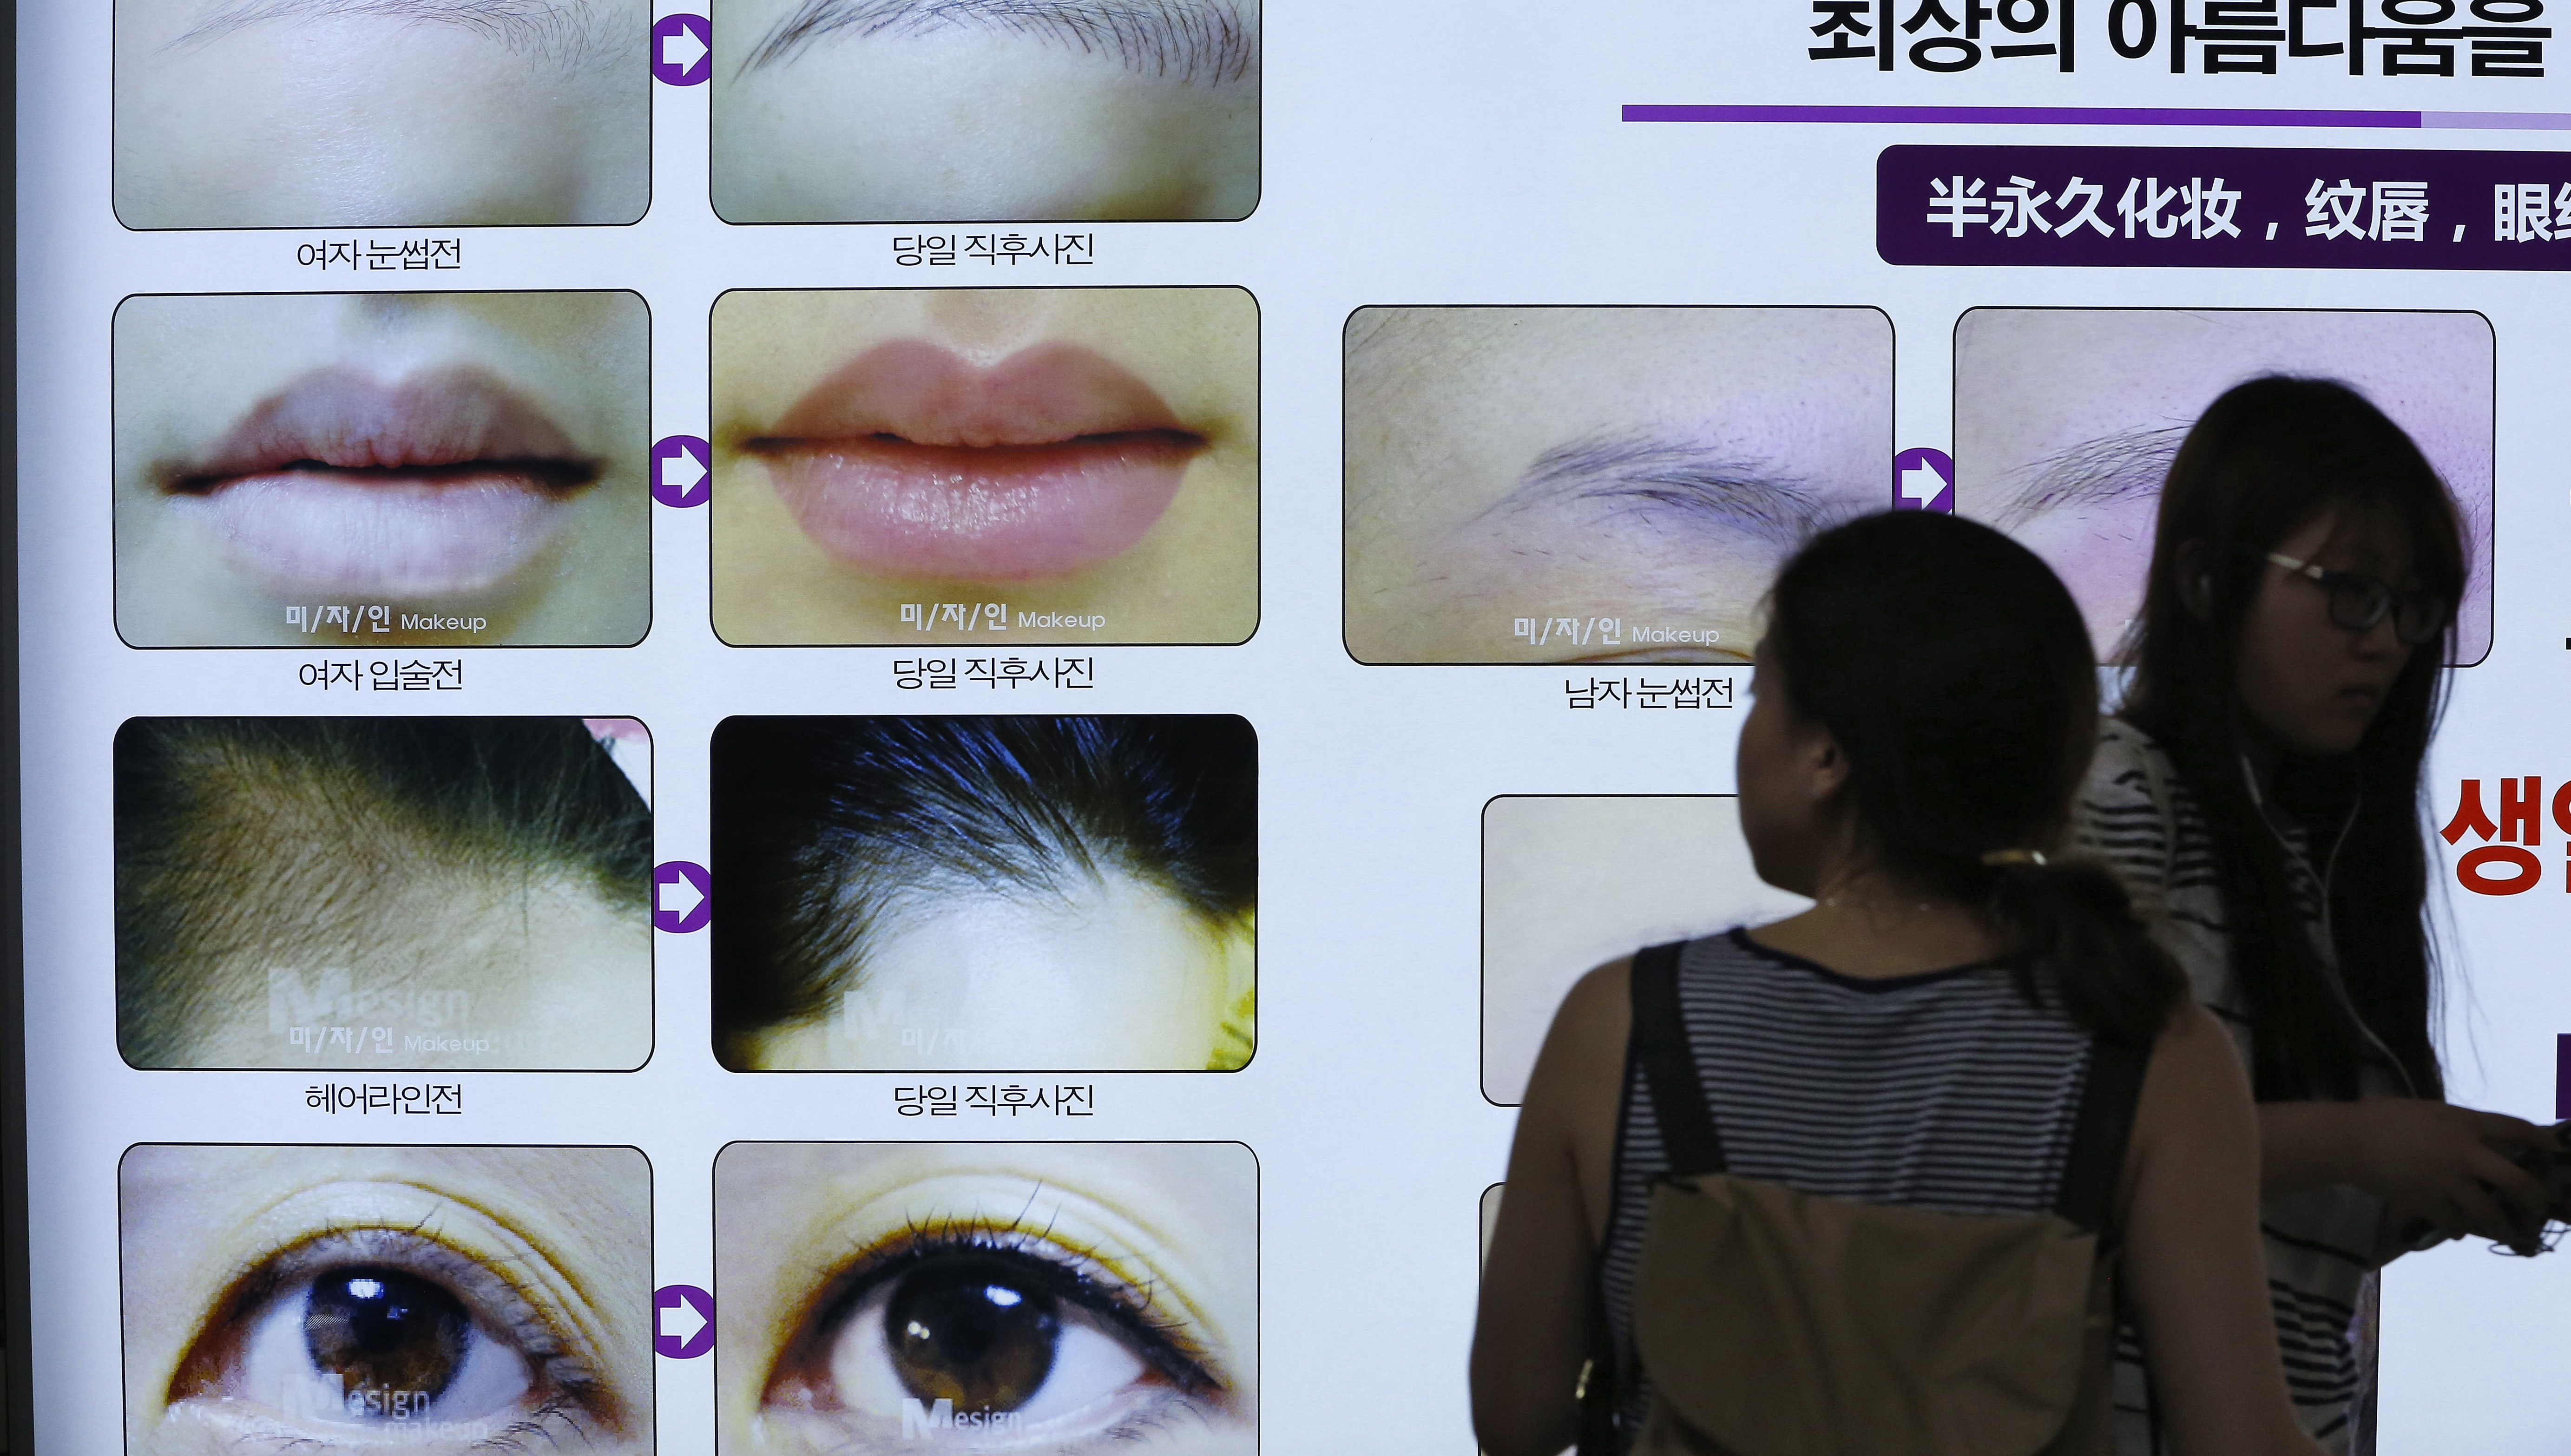 South Korean women pass by an advertising board for a plastic surgery clinic at the Apgujeong subway line 3 station south of Seoul, South Korea, 26 May 2015.